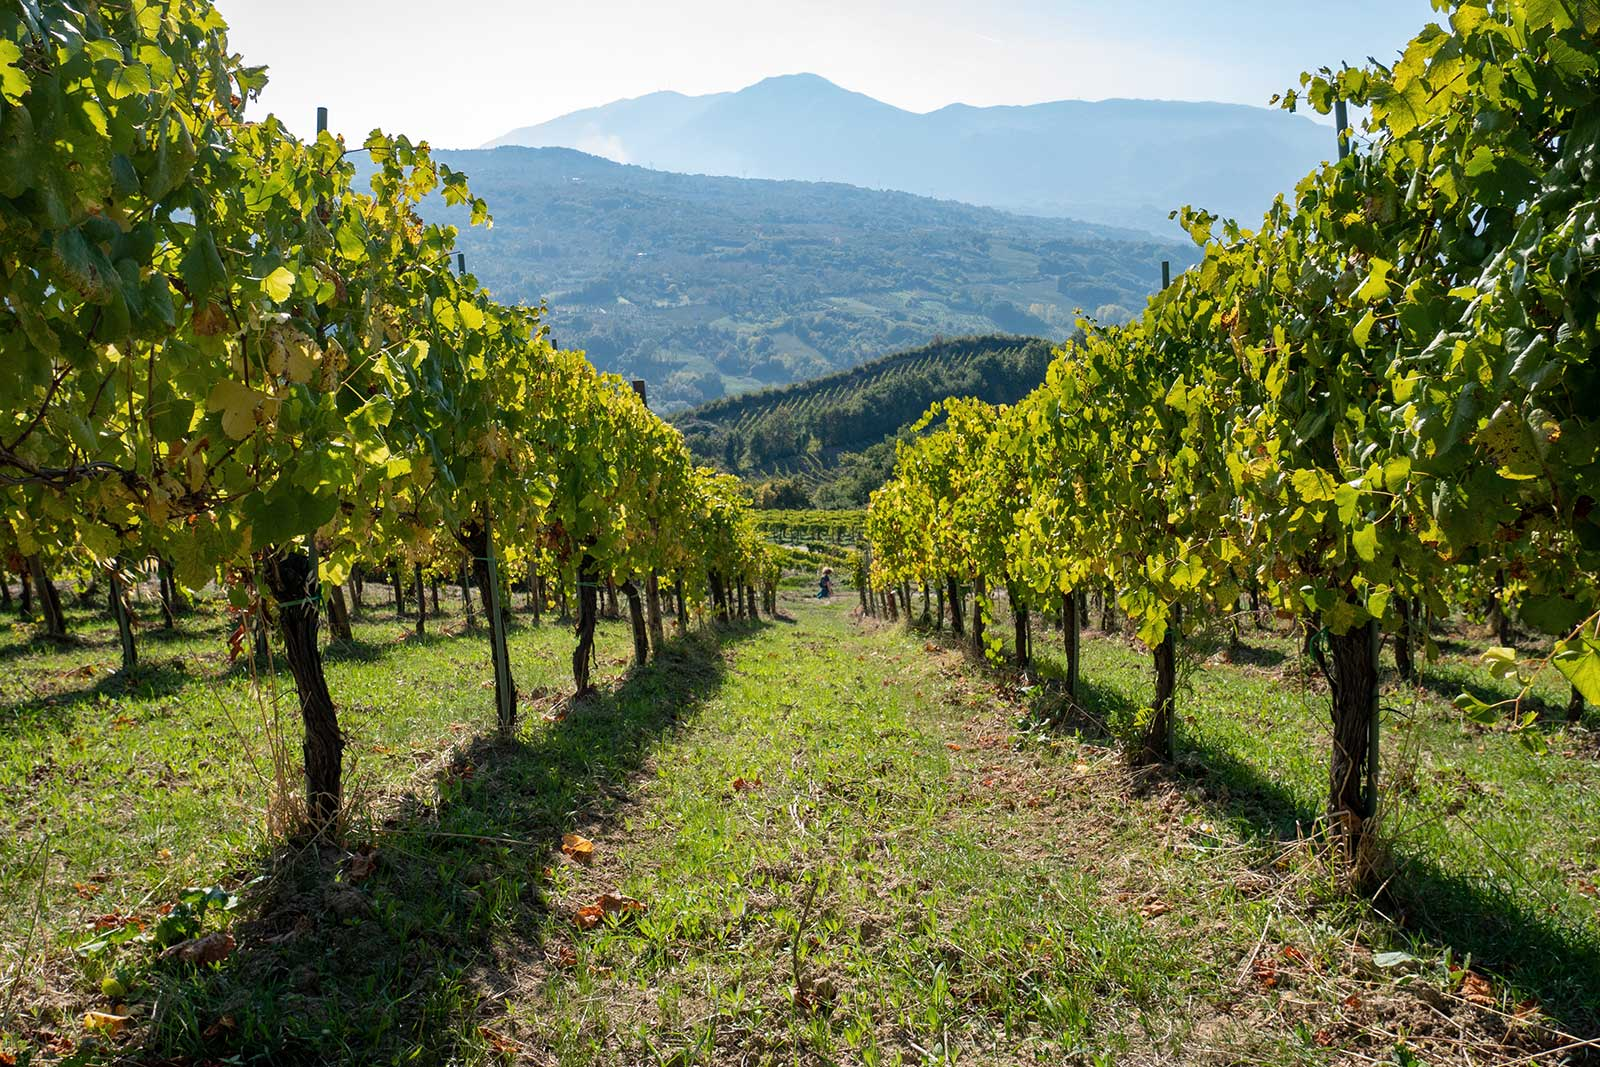 A low perspective of a vineyard in the heart of Campania, Italy. Stock photo.